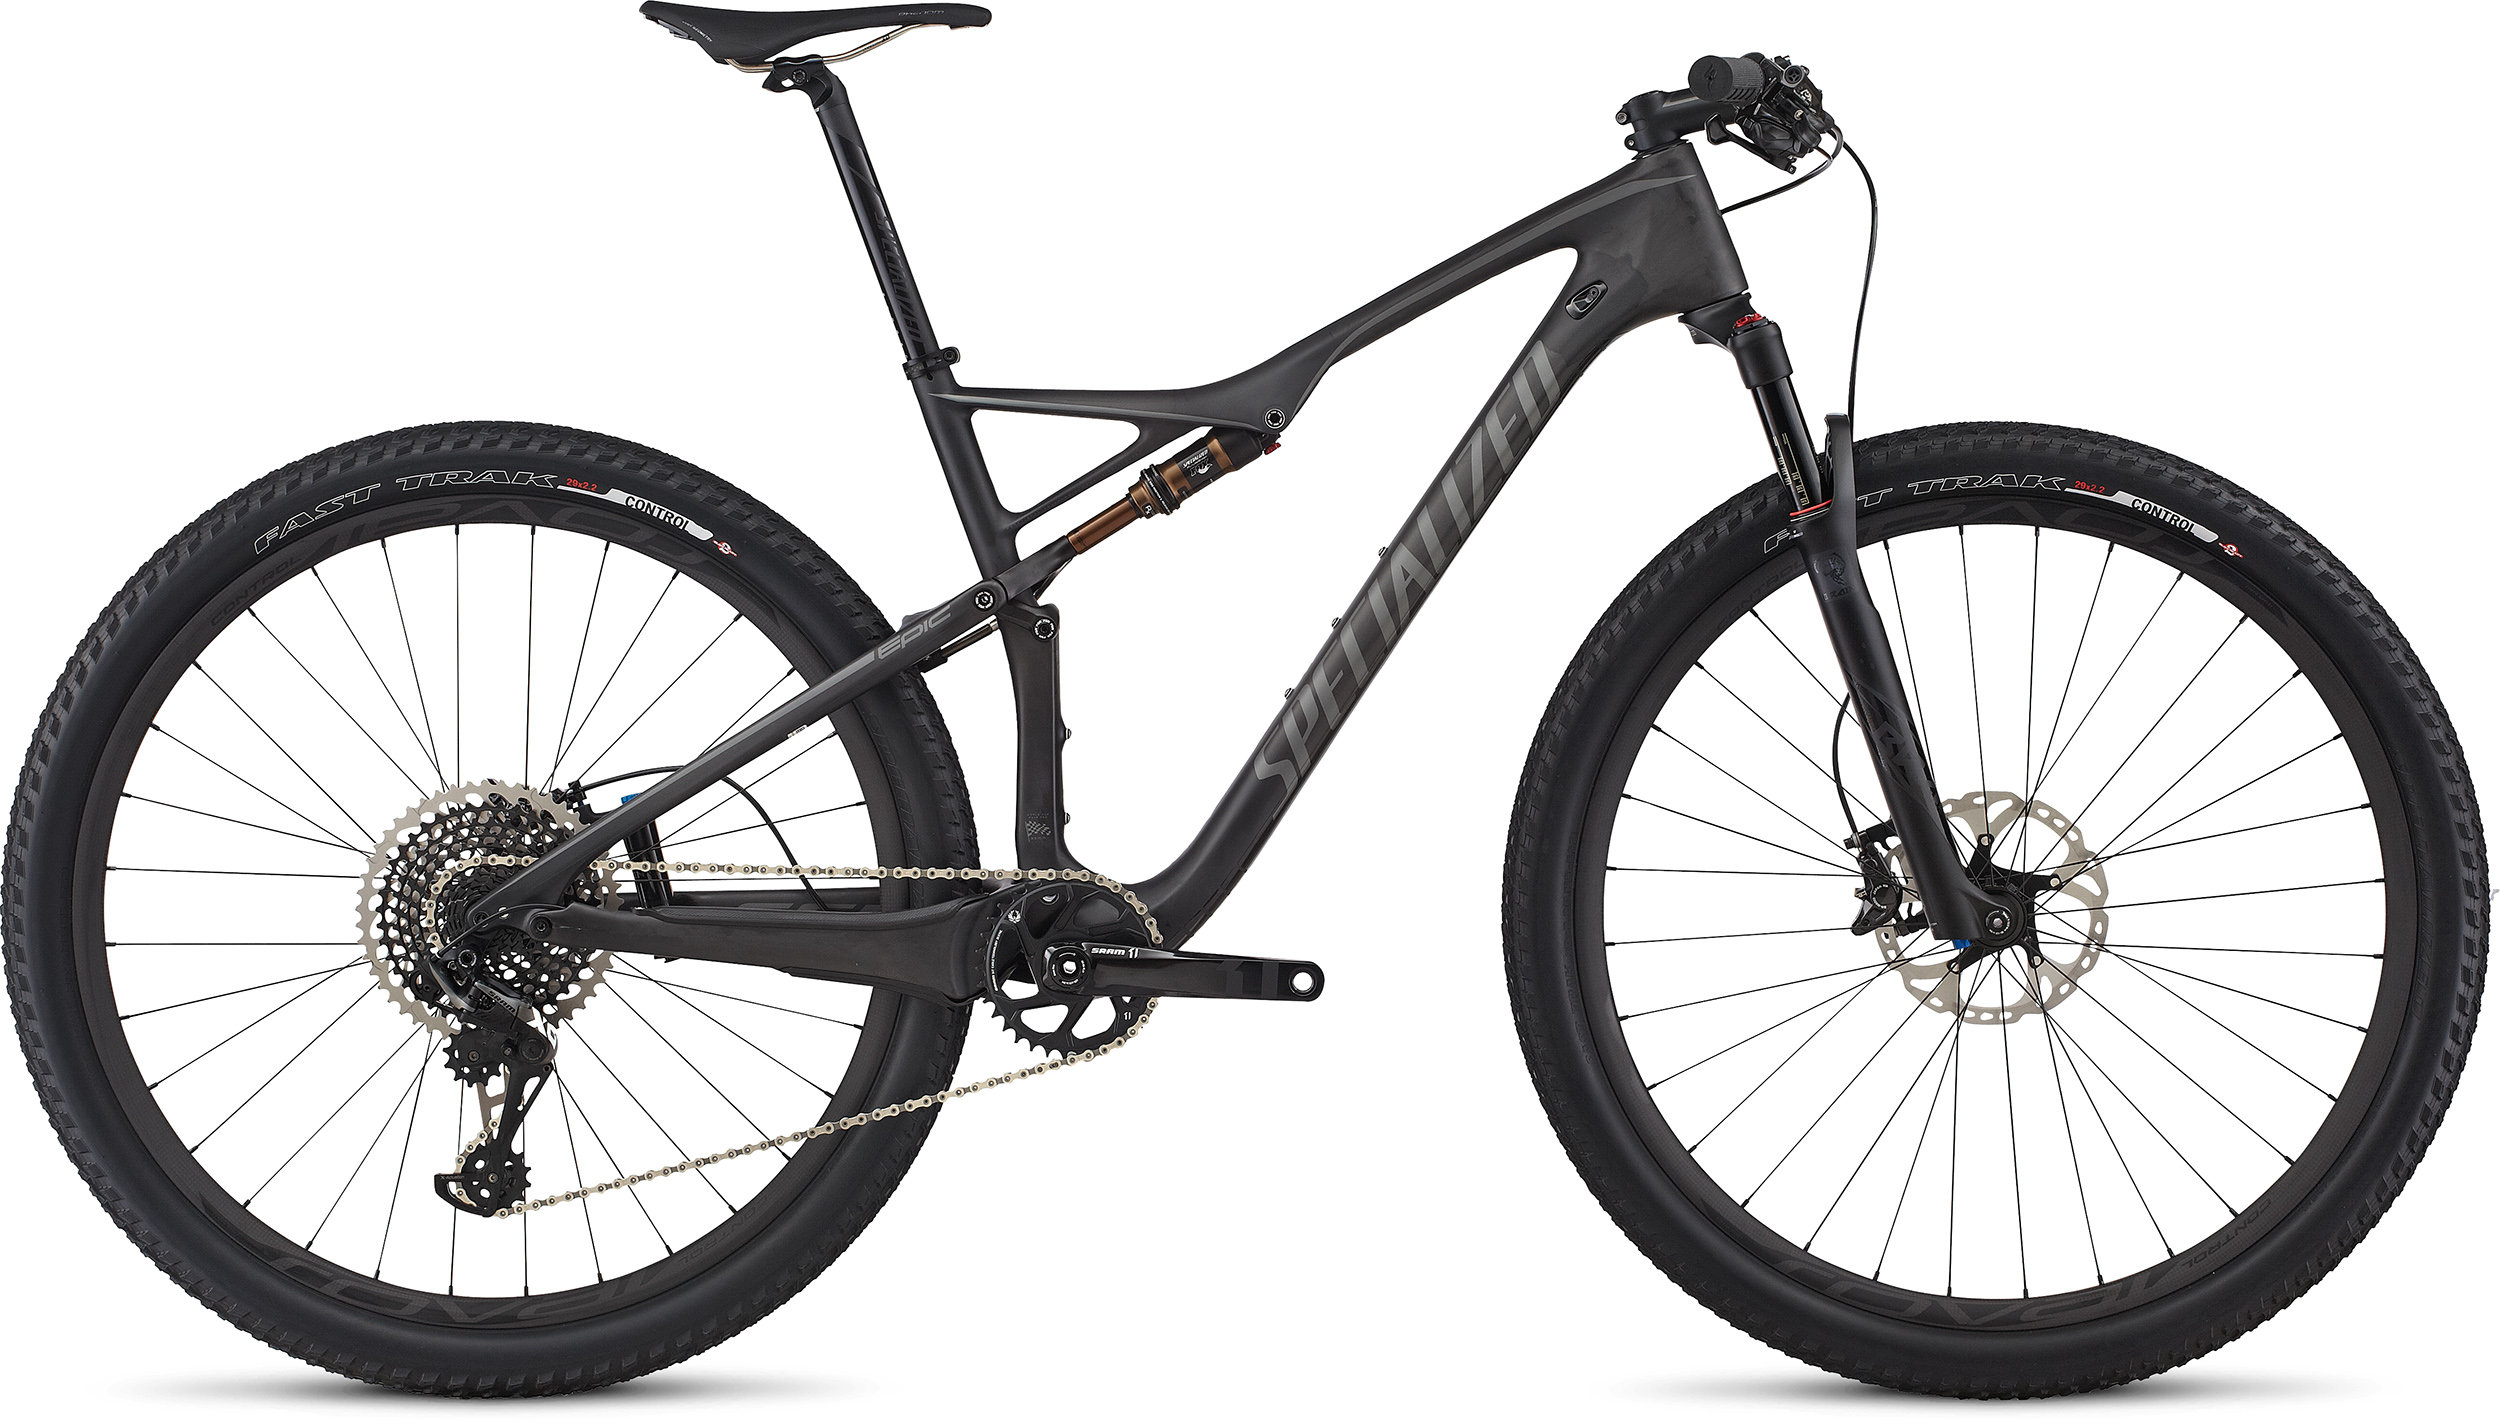 SPECIALIZED EPIC FSR PRO CARBON WC 29 CARB/CHAR XL - SPECIALIZED EPIC FSR PRO CARBON WC 29 CARB/CHAR XL